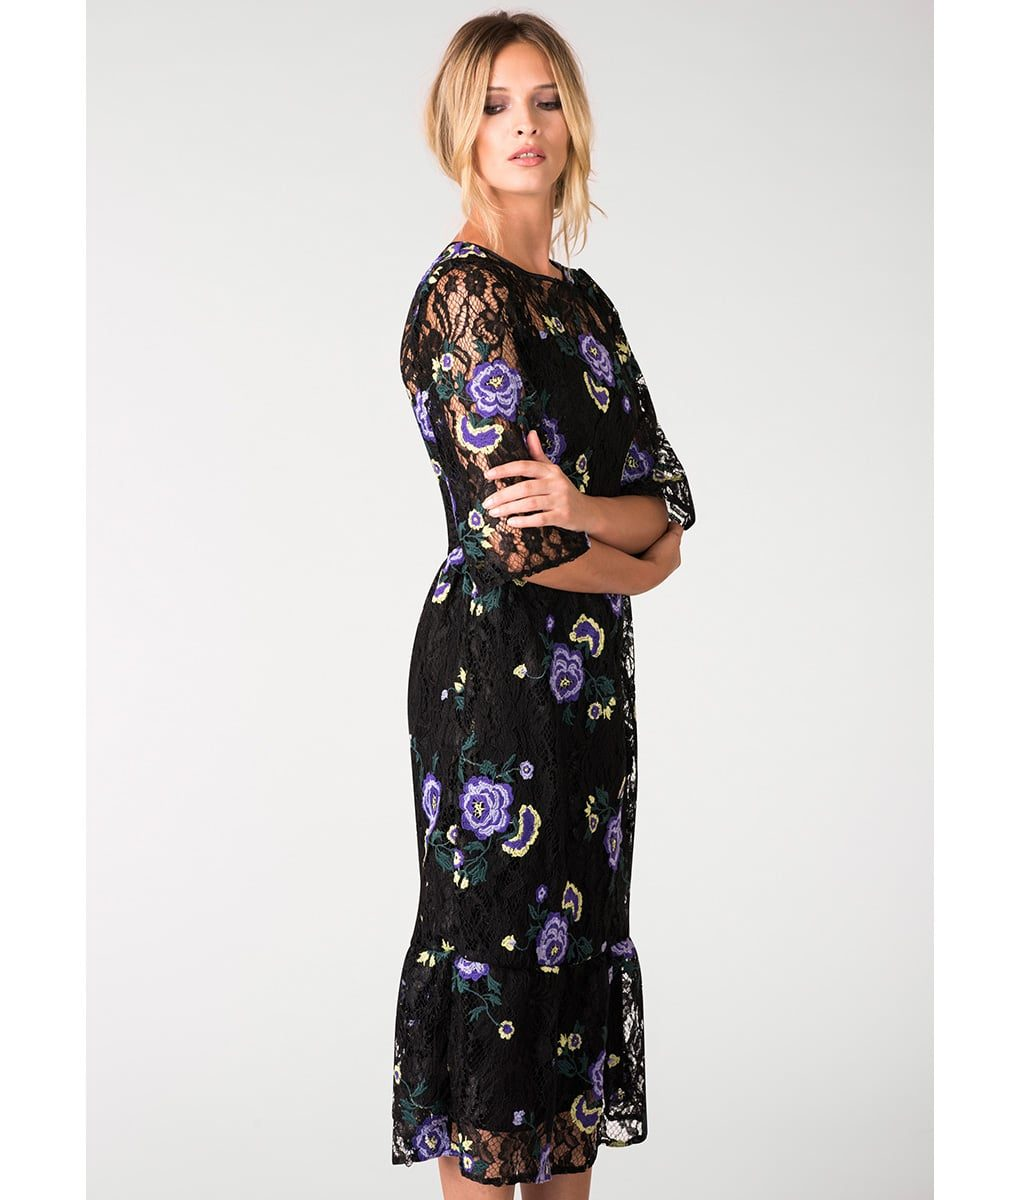 4de1d48c Closet London Floral Black Lace Midi Dress | Alila Boutique